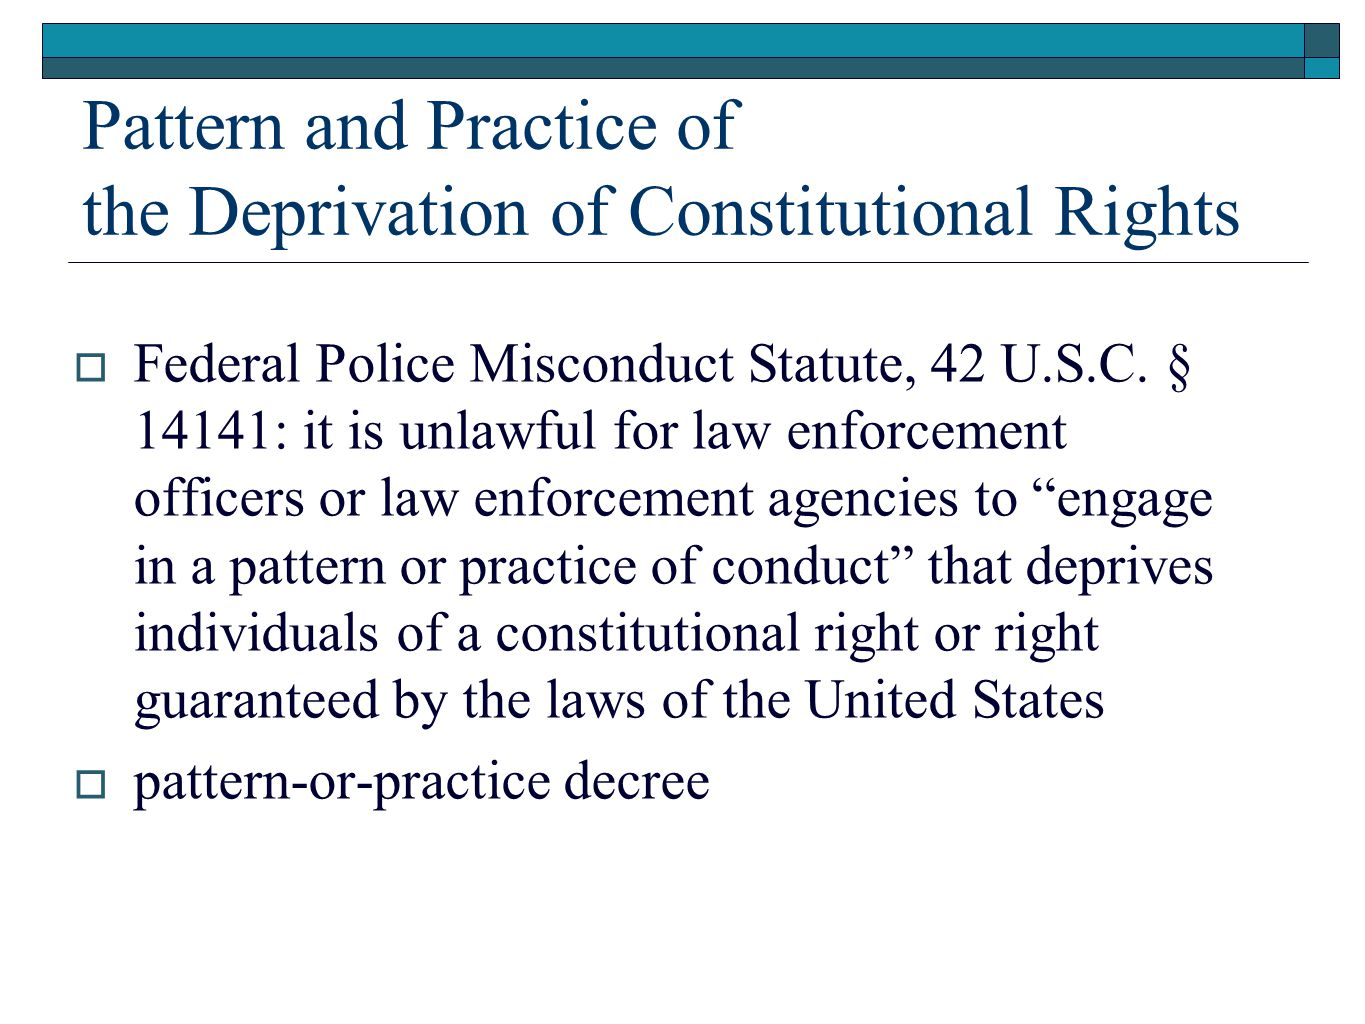 Pattern and Practice of the Deprivation of Constitutional Rights